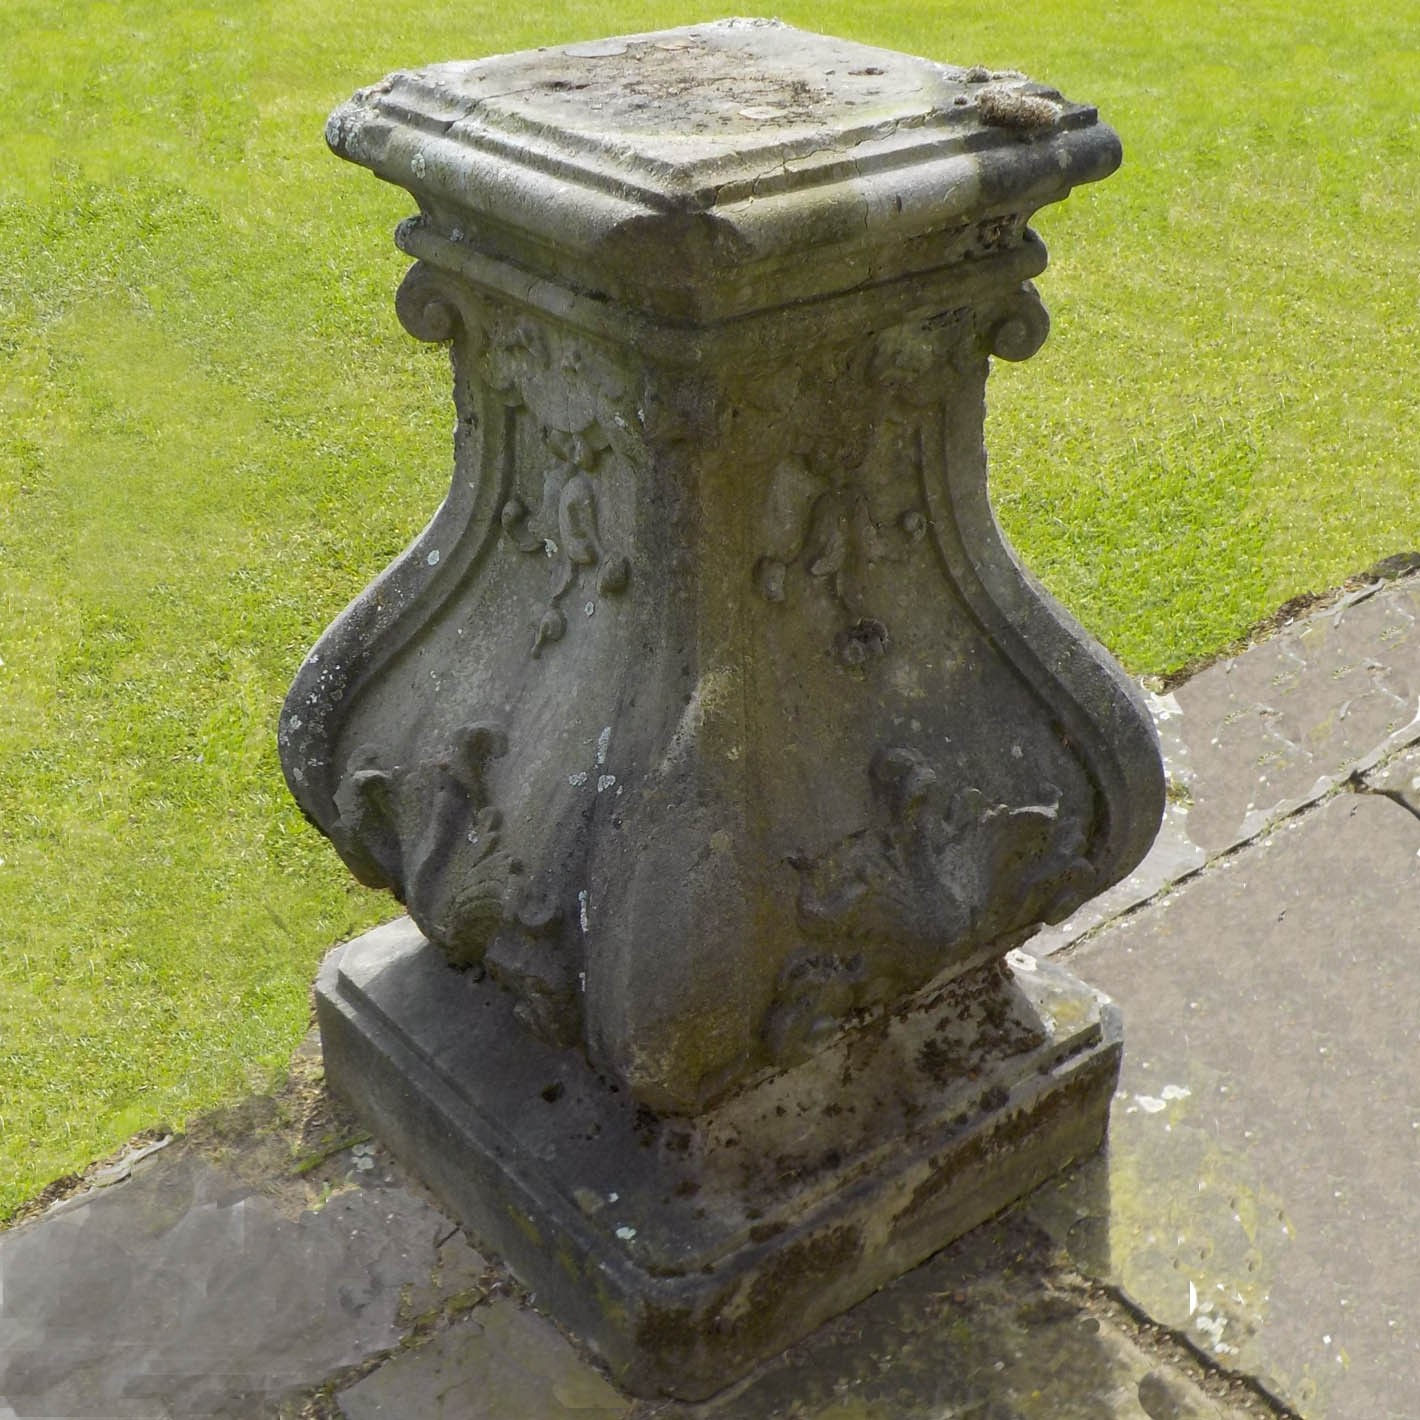 Antique natural stone Dutch garden base, 18th century